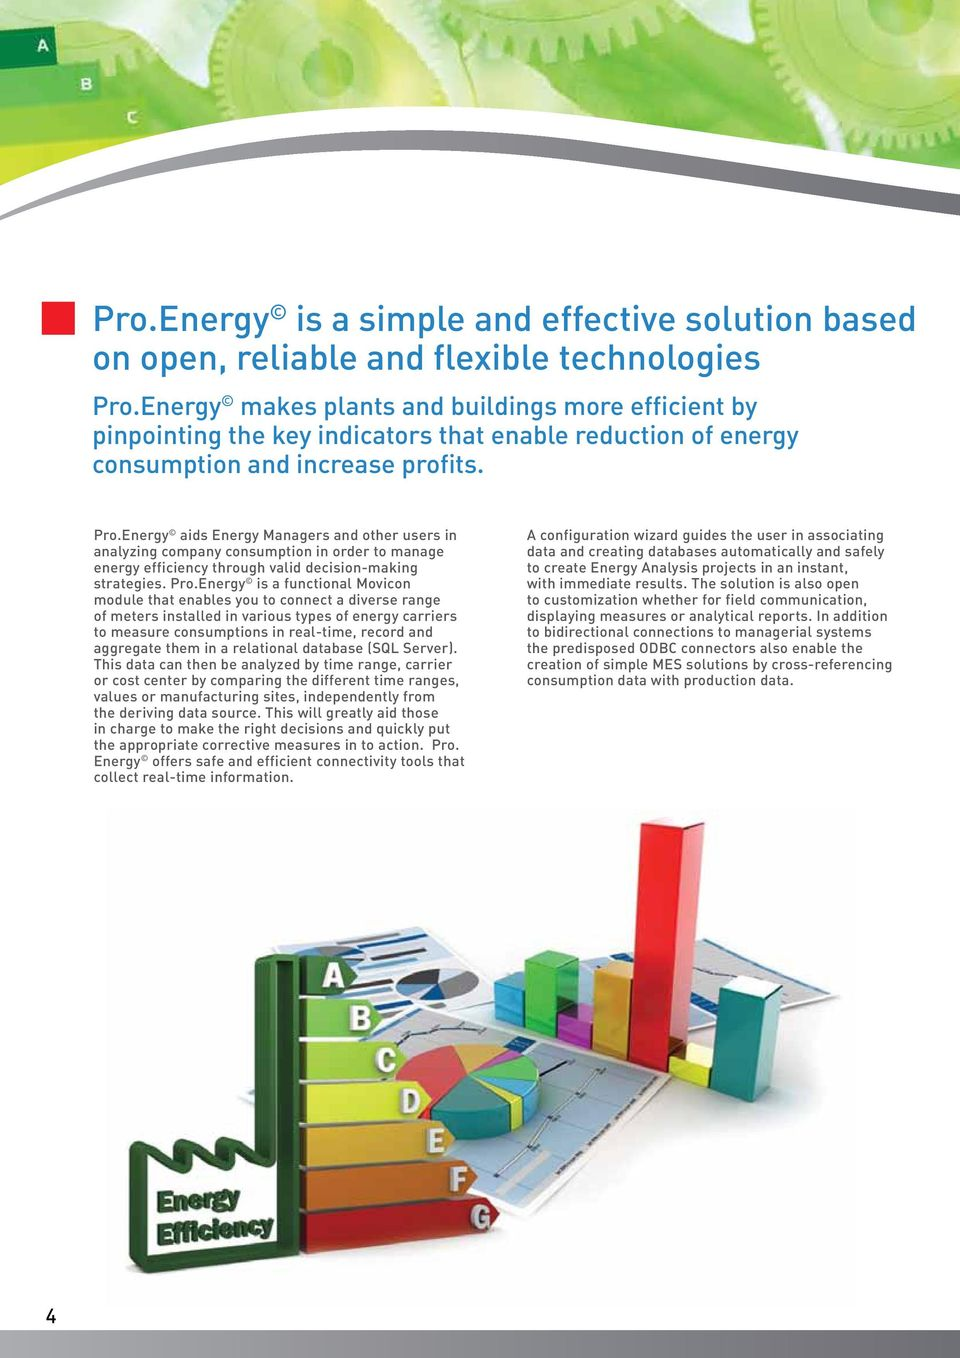 Energy aids Energy Managers and other users in analyzing company consumption in order to manage energy efficiency through valid decision-making strategies. Pro.